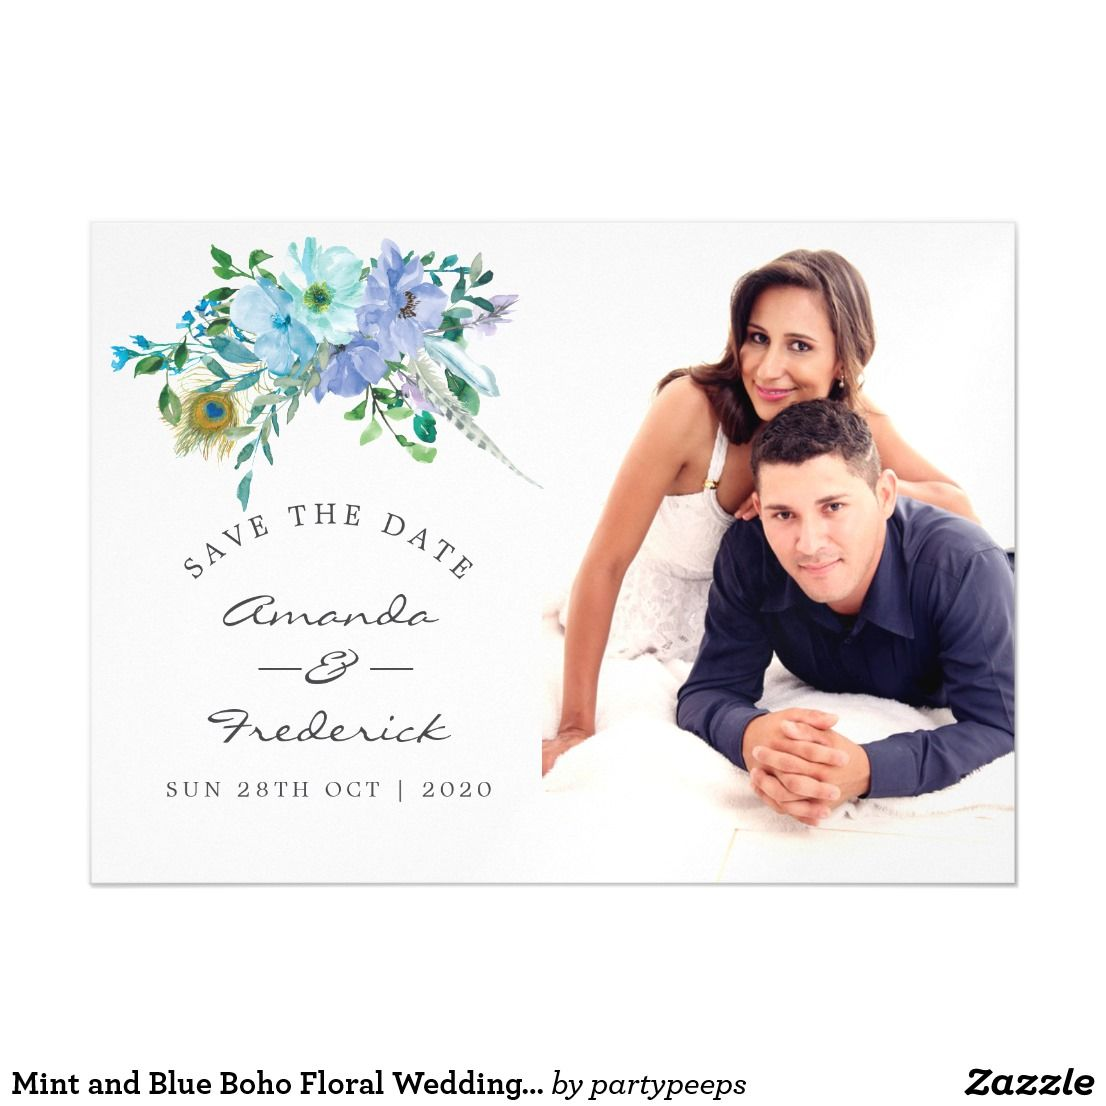 mint and blue boho floral wedding save the date magnetic invitation